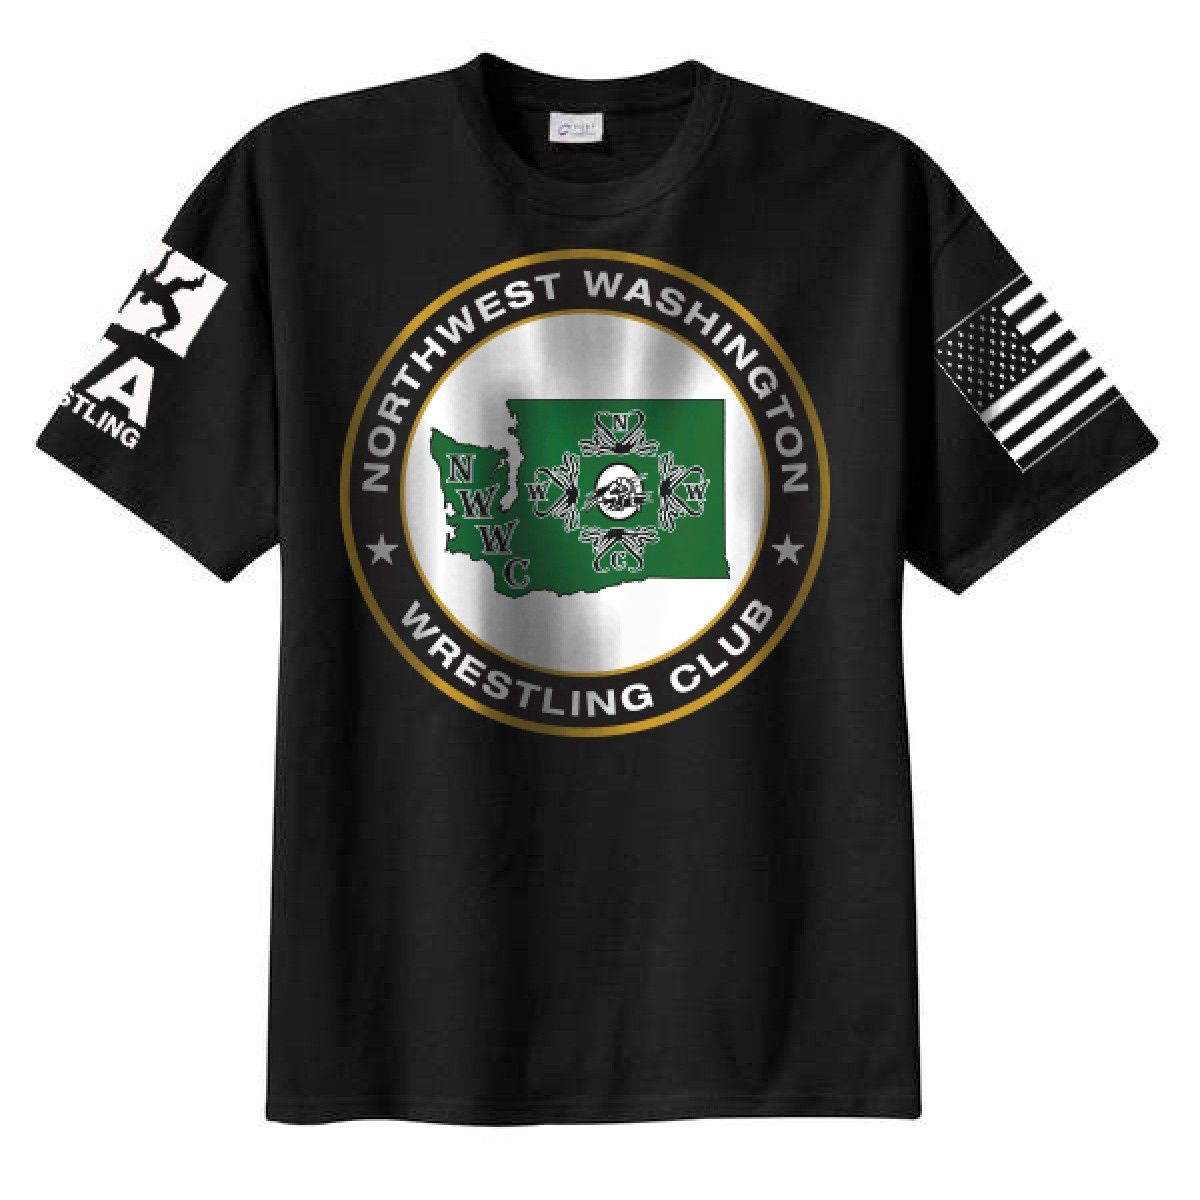 NWWC Black T-Shirt With Green Logo-Black-L